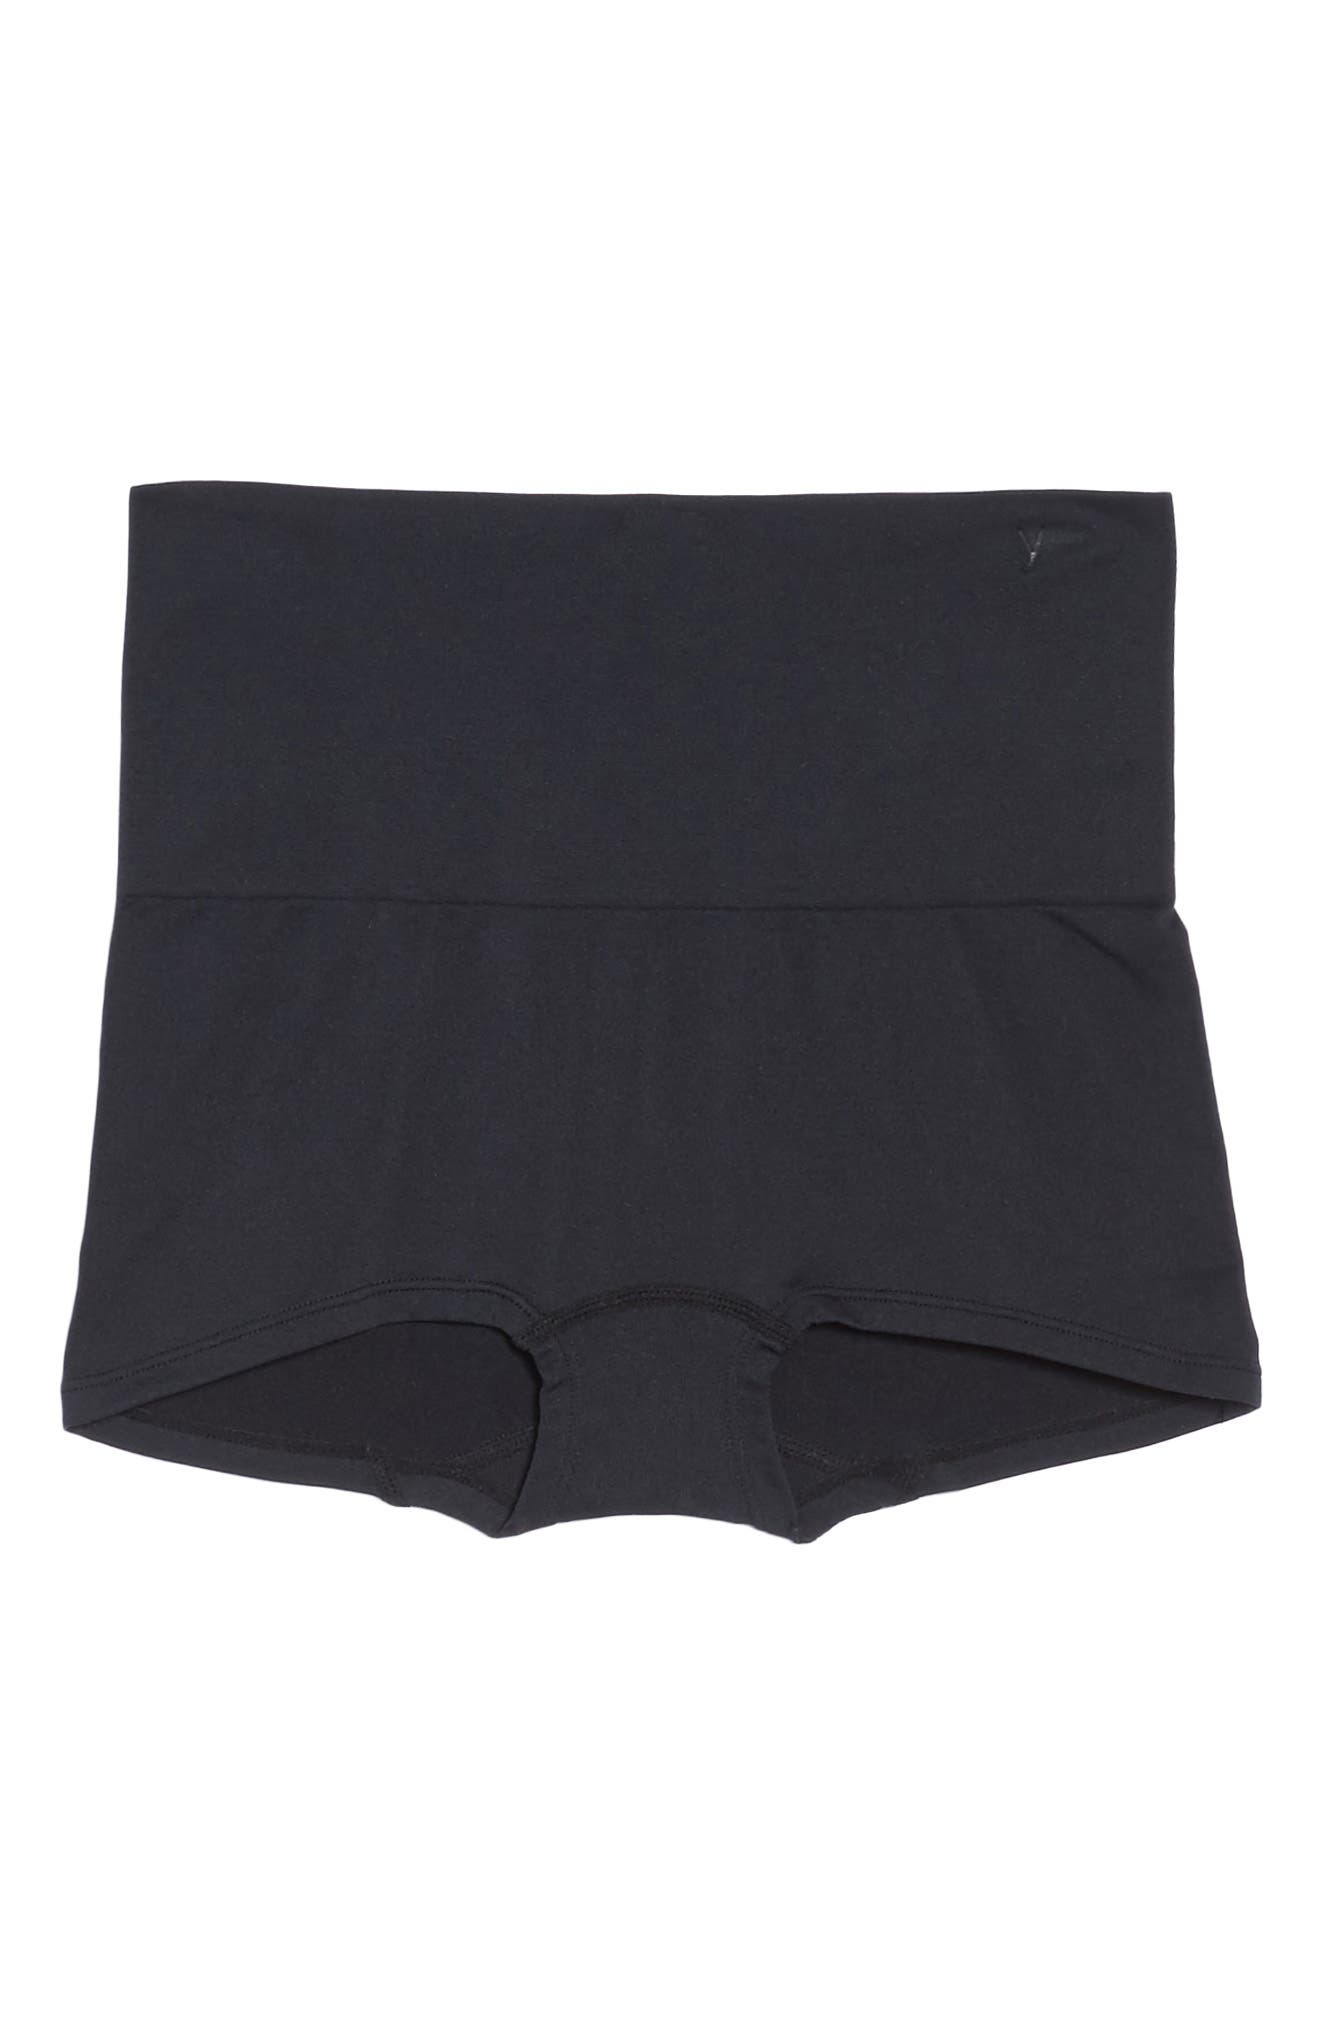 Ultralite Seamless Shaping Girlshorts,                             Alternate thumbnail 5, color,                             BLACK